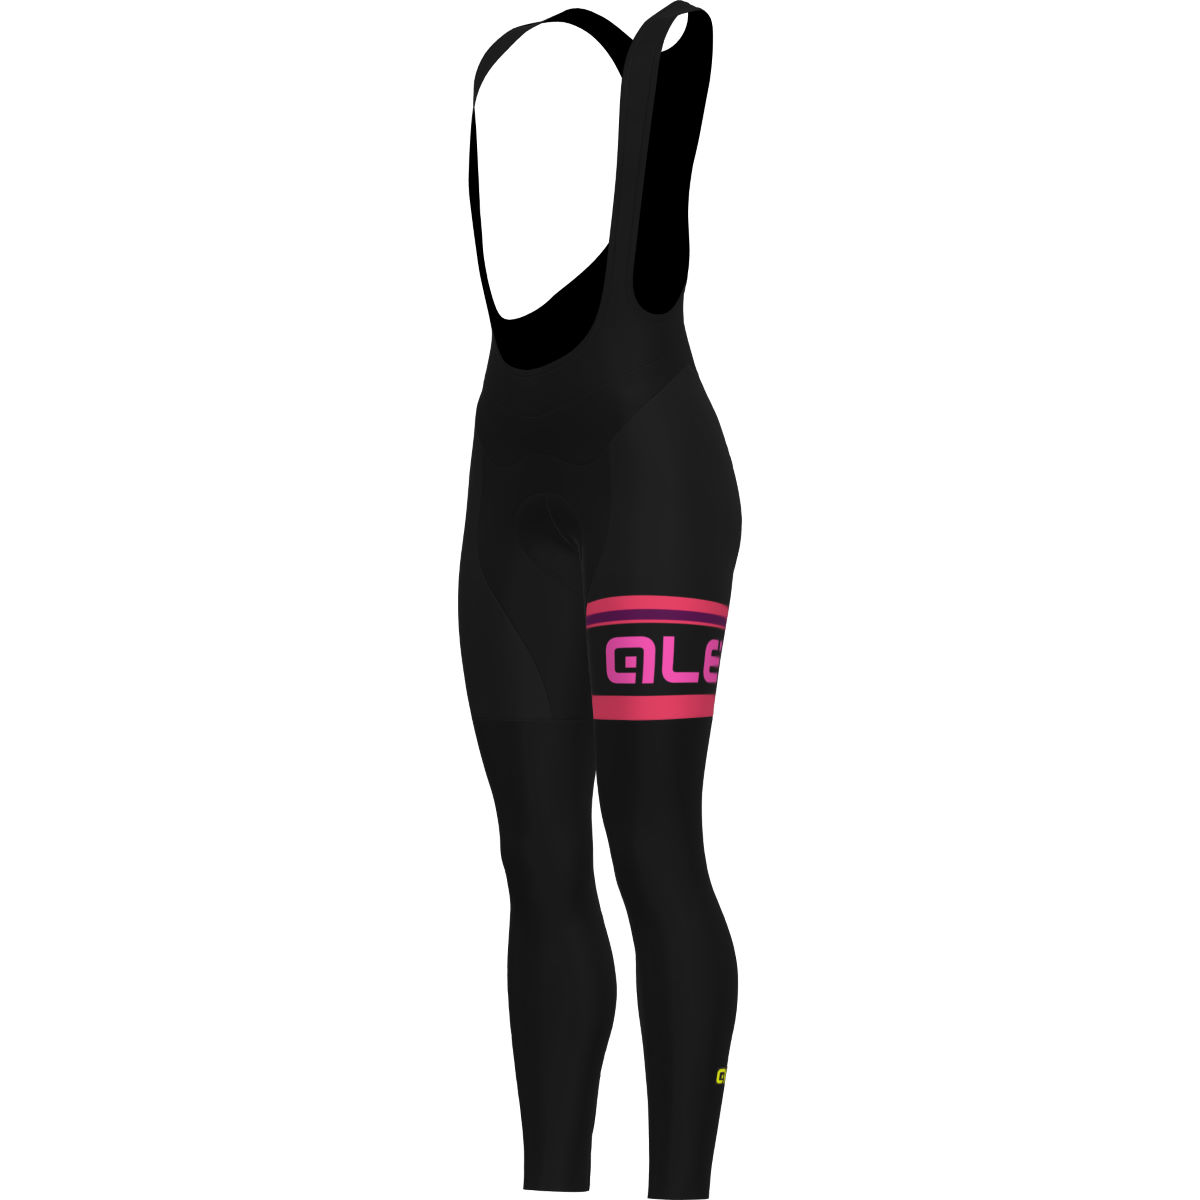 Alé Faded Stripe Women's Bib Tights - Culotes largos con tirantes